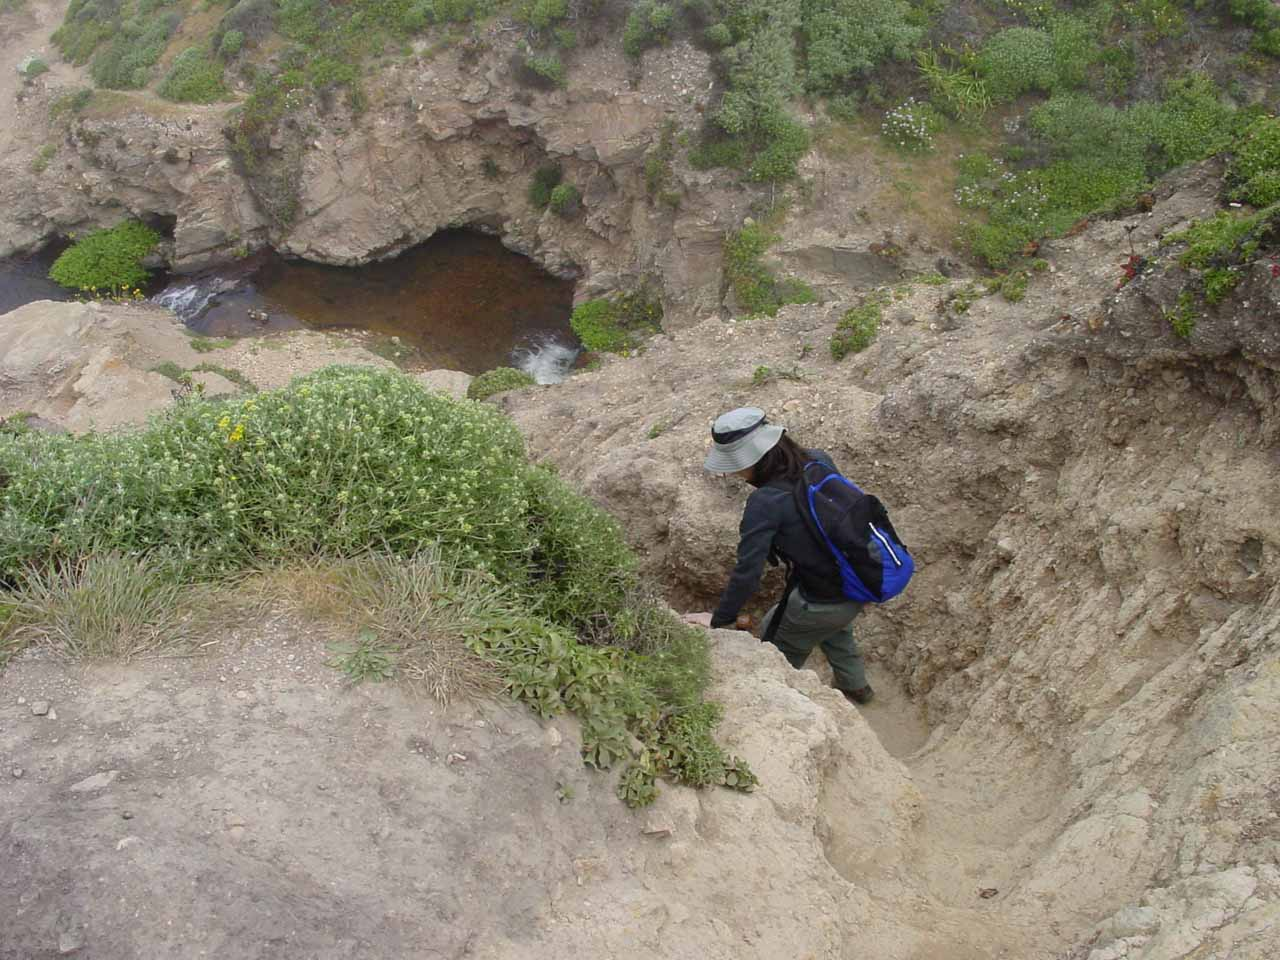 Julie continuing the descent with Alamere Creek below